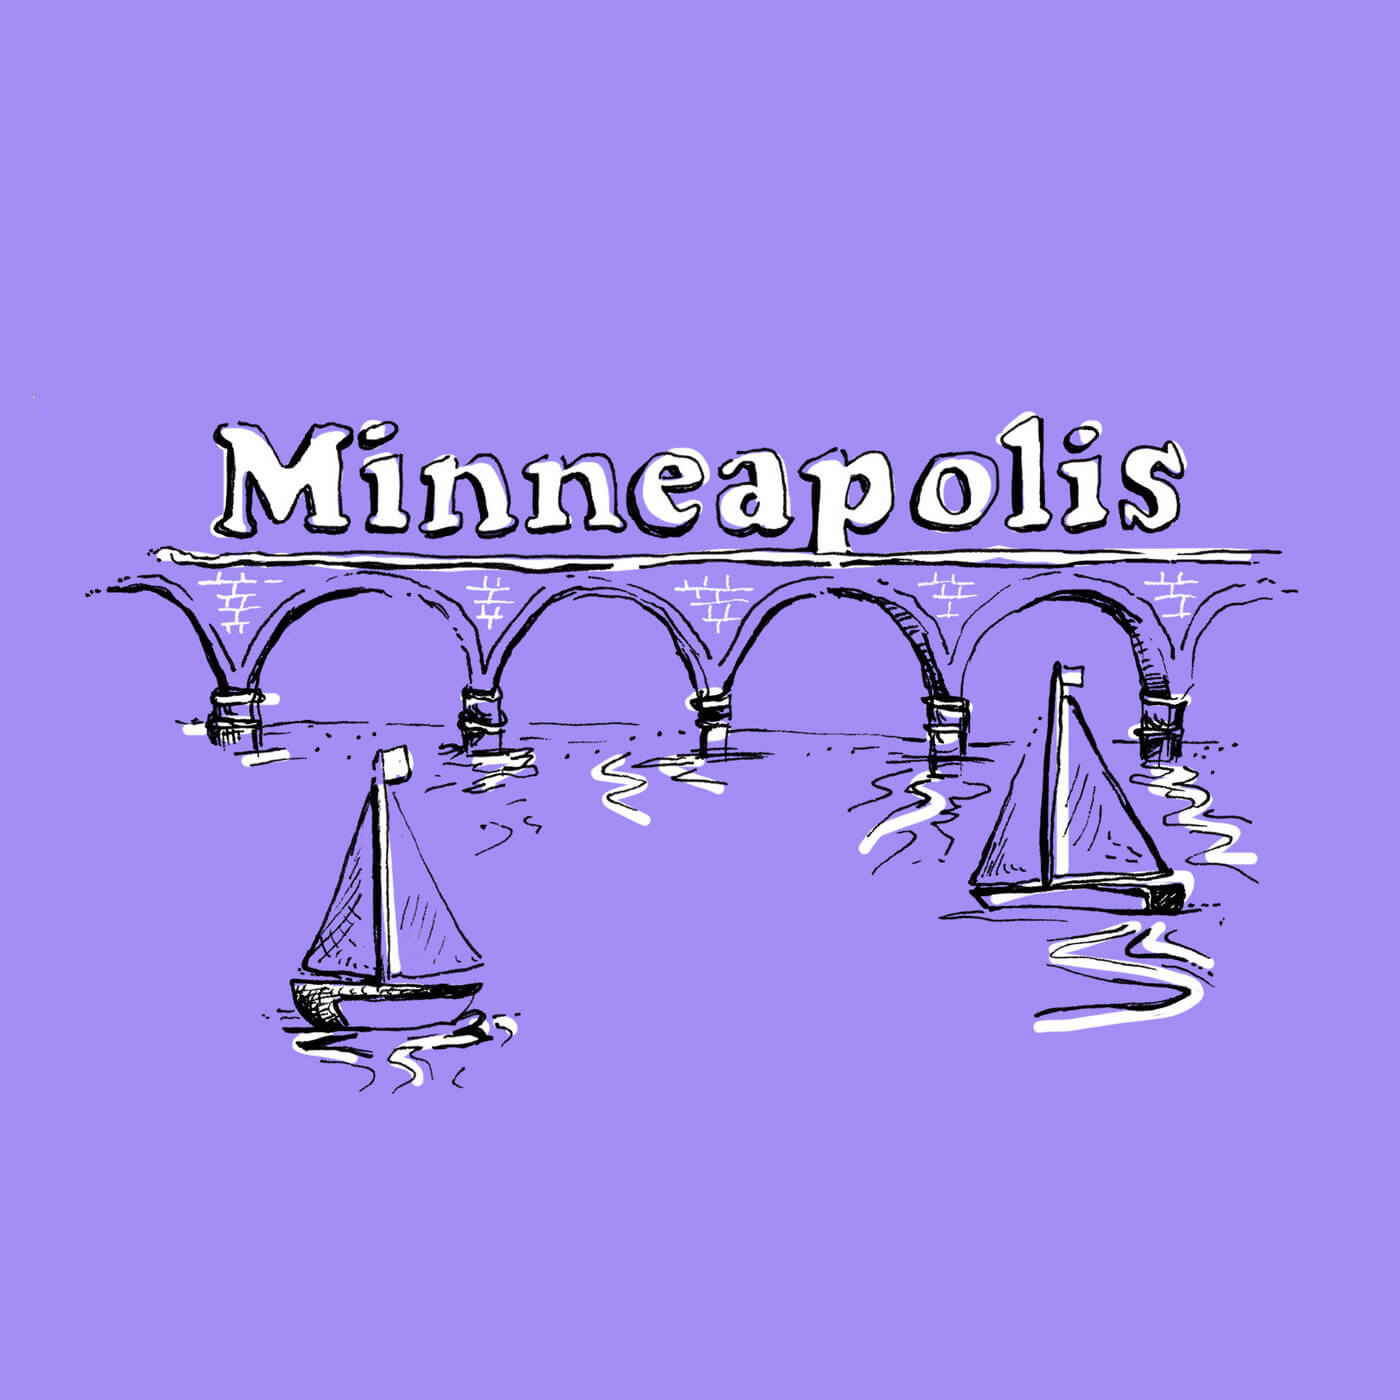 Neenah Presents Minneapolis - An illustrated guide to the land of ten thousand lakes, featuring hand-drawn neighborhood maps around Minneapolis.View Project →